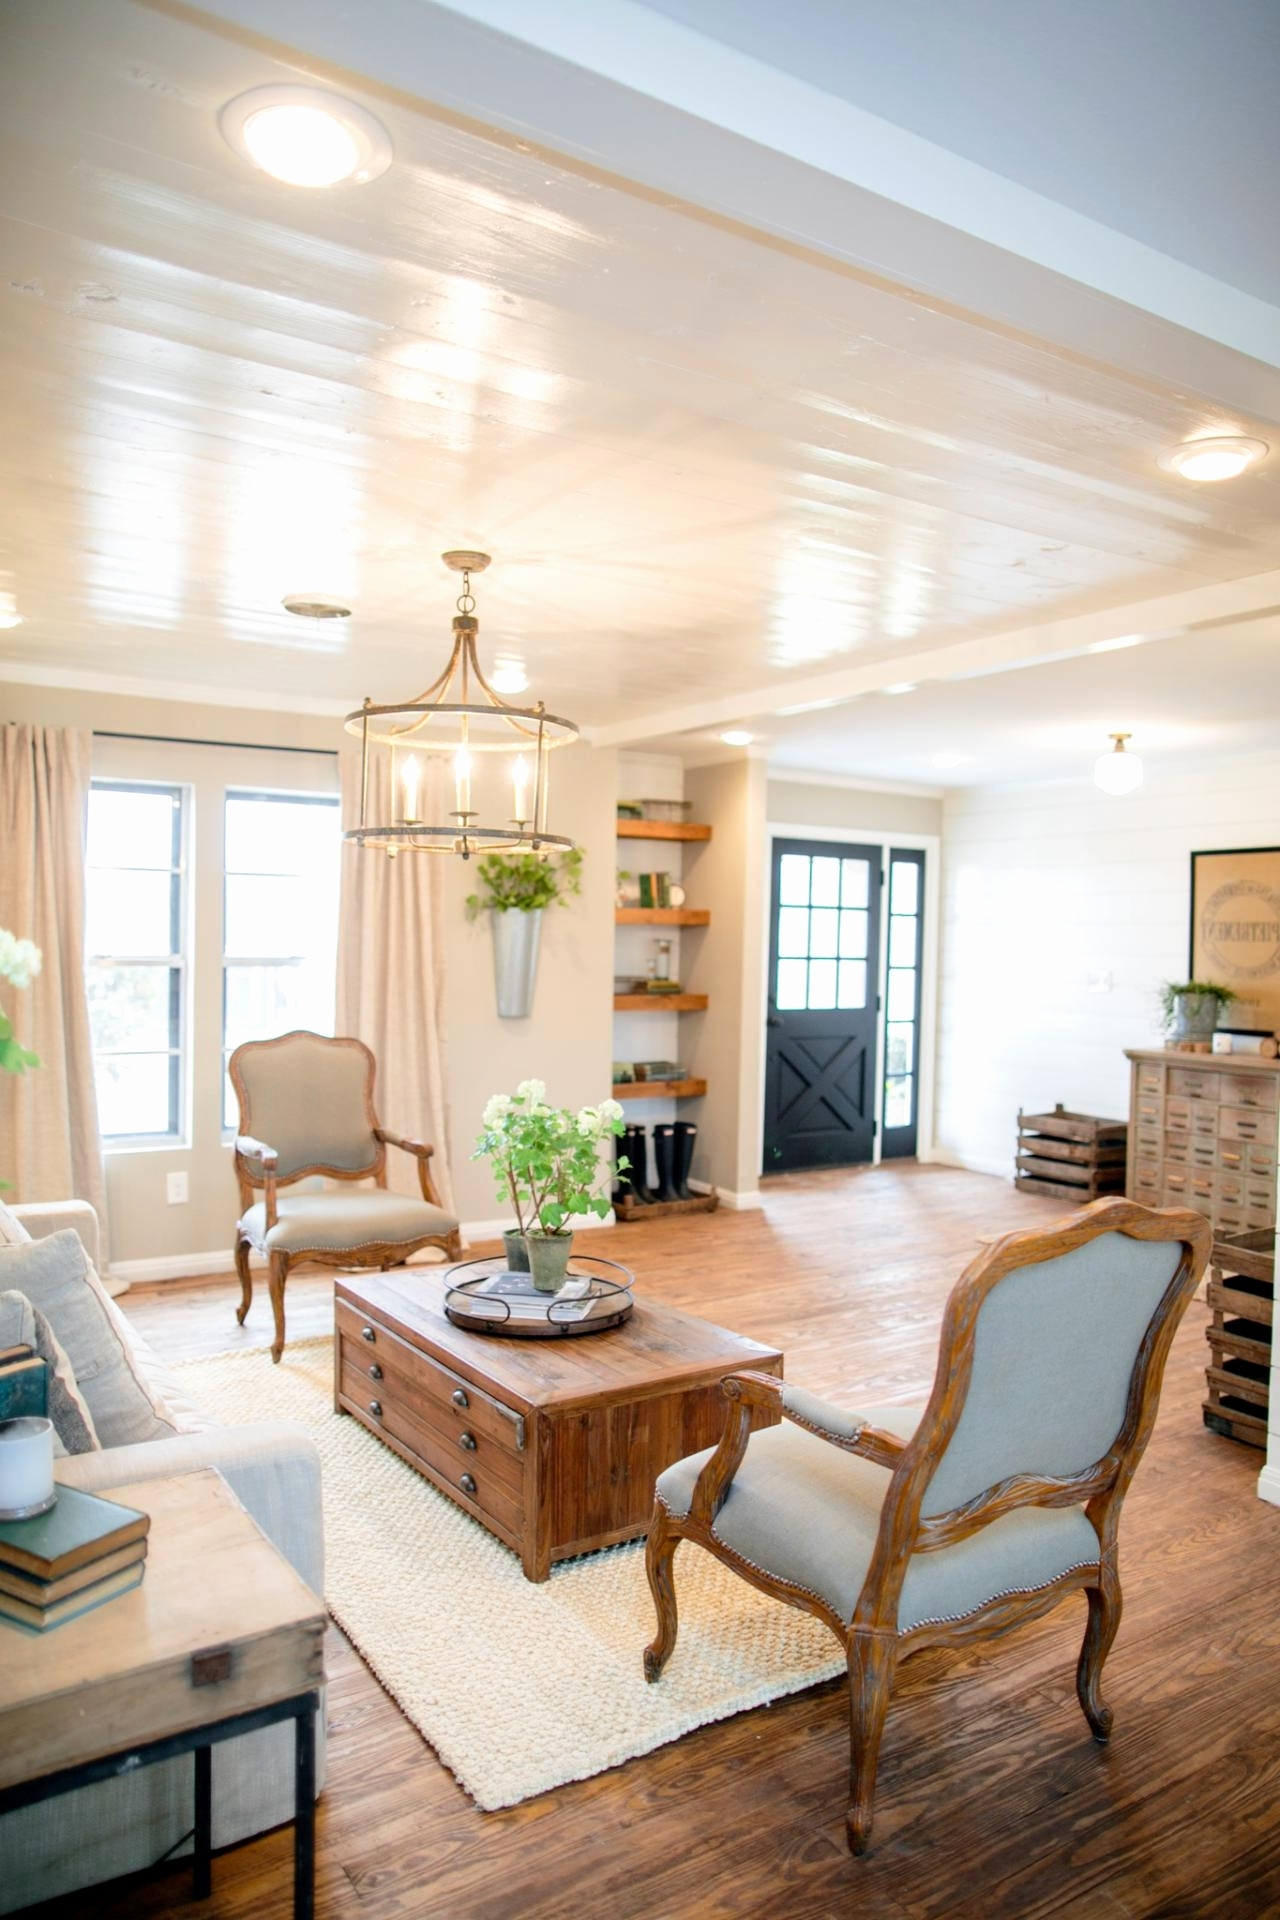 Latest Joanna Gaines Outdoor Ceiling Fans With Ceiling Fan Direction For Vaulted Ceilings Awesome 9 Design Tricks (View 18 of 20)